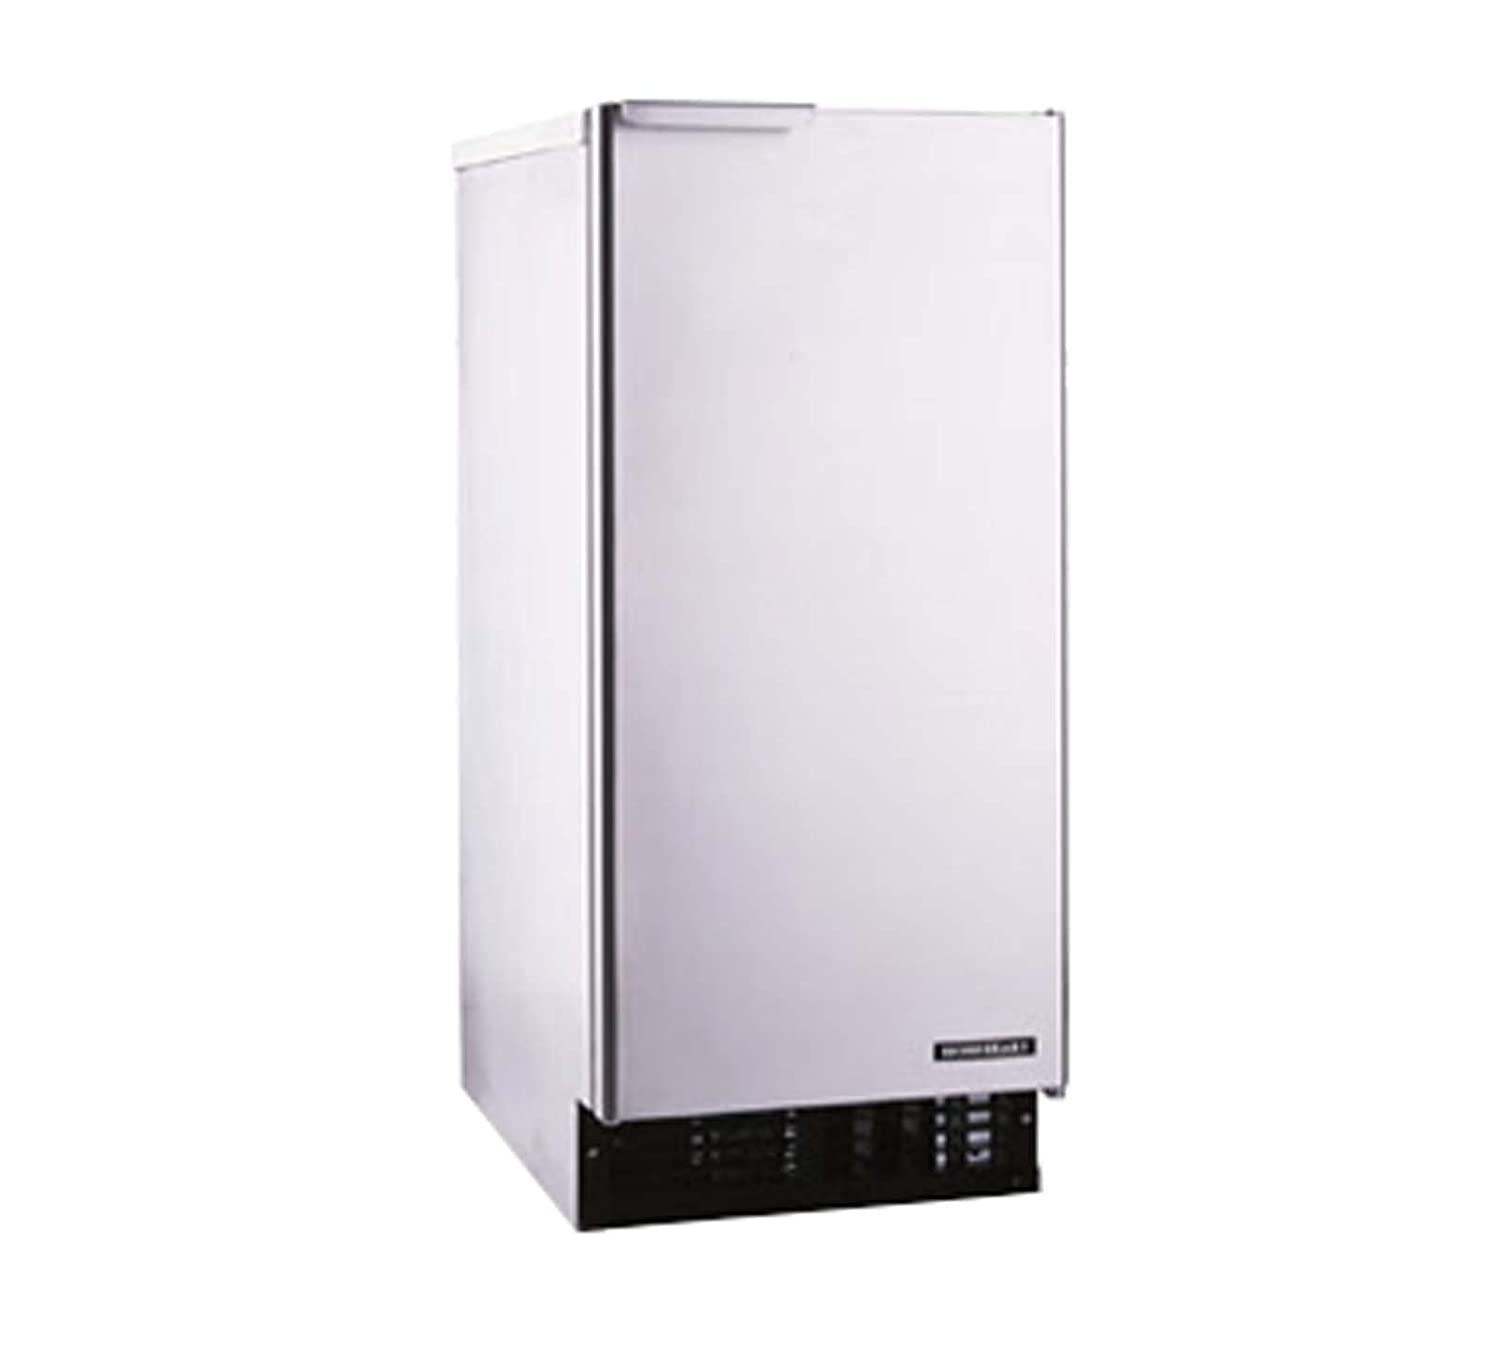 "C-101BAH-AD 15"""" ADA Compliant Undercounter Self-Contained Cubelet Ice Maker With 92 lbs. Daily Ice Production 20 lbs. Built-In Storage Capacity Reversible Door And Front Access: Stainless Steel"